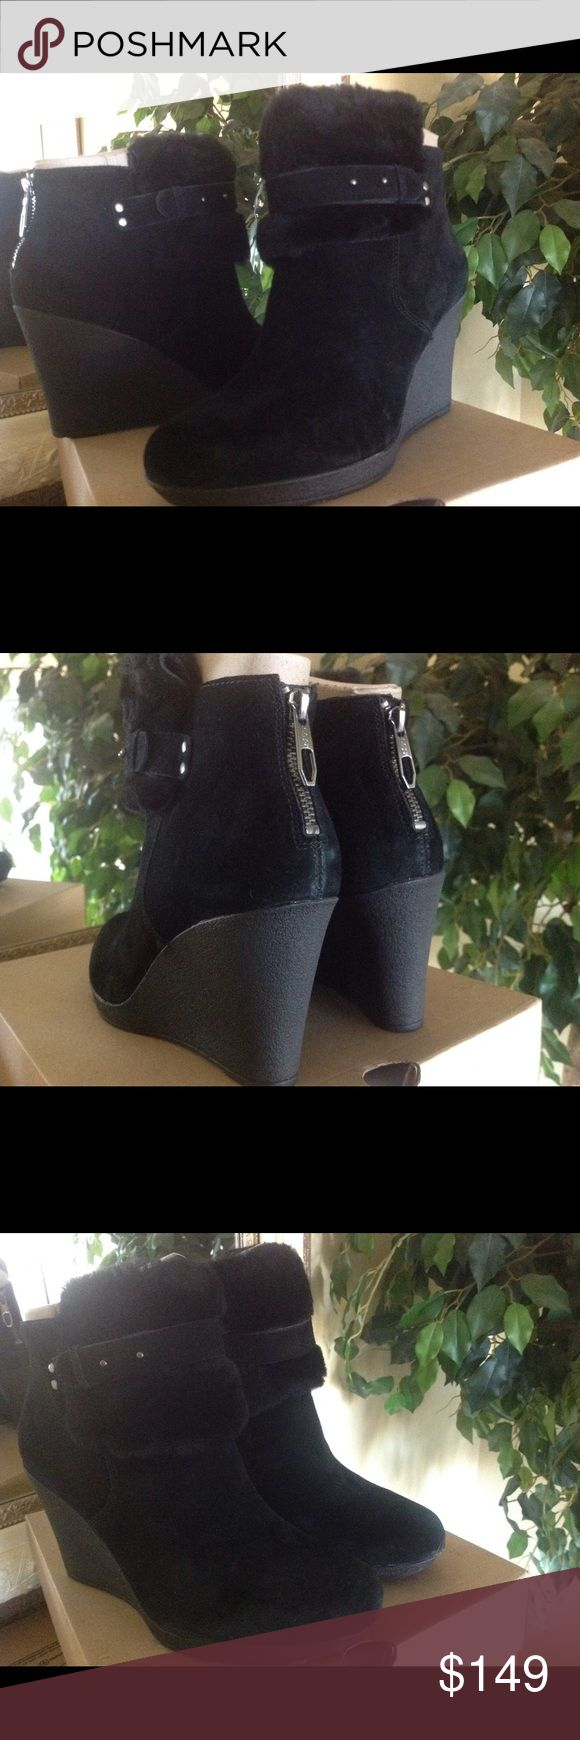 Ugg Black Suede Wedge Boots Ugg Antonia Black Suede Wedge Boots with Shearling cuff and shearling toe bed.  Brand new w/box.  No trades. UGG Shoes Ankle Boots & Booties